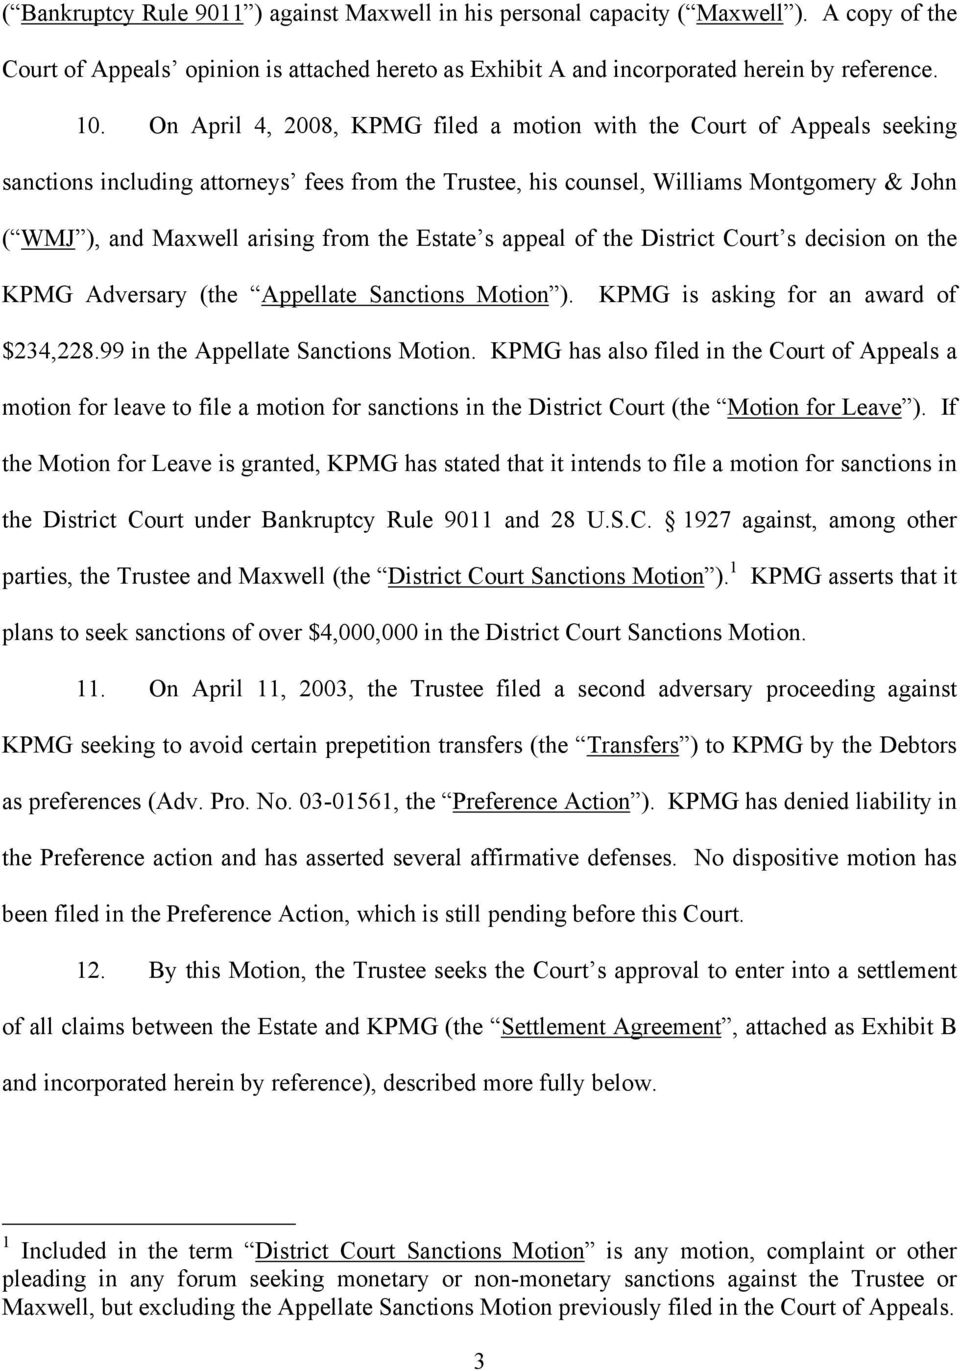 the Estate s appeal of the District Court s decision on the KPMG Adversary (the Appellate Sanctions Motion ). KPMG is asking for an award of $234,228.99 in the Appellate Sanctions Motion.